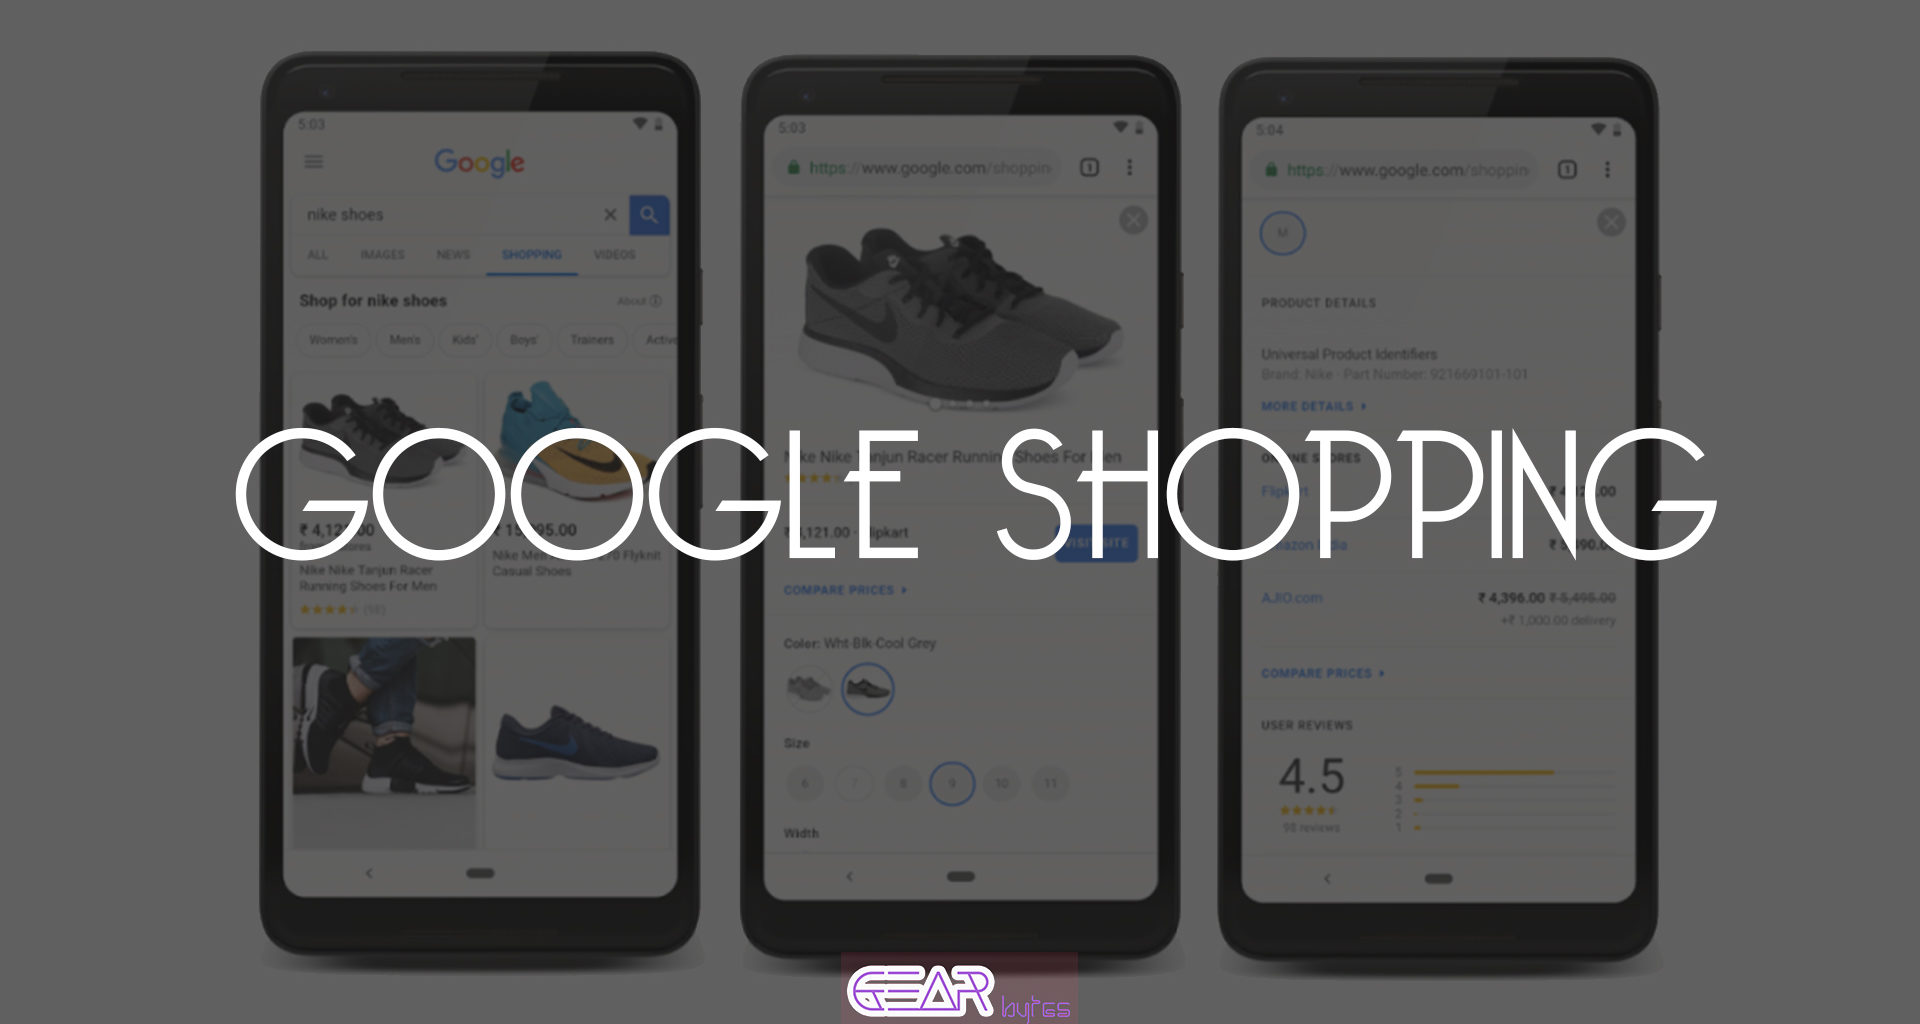 Google Shopping launched in India, gives new search experience